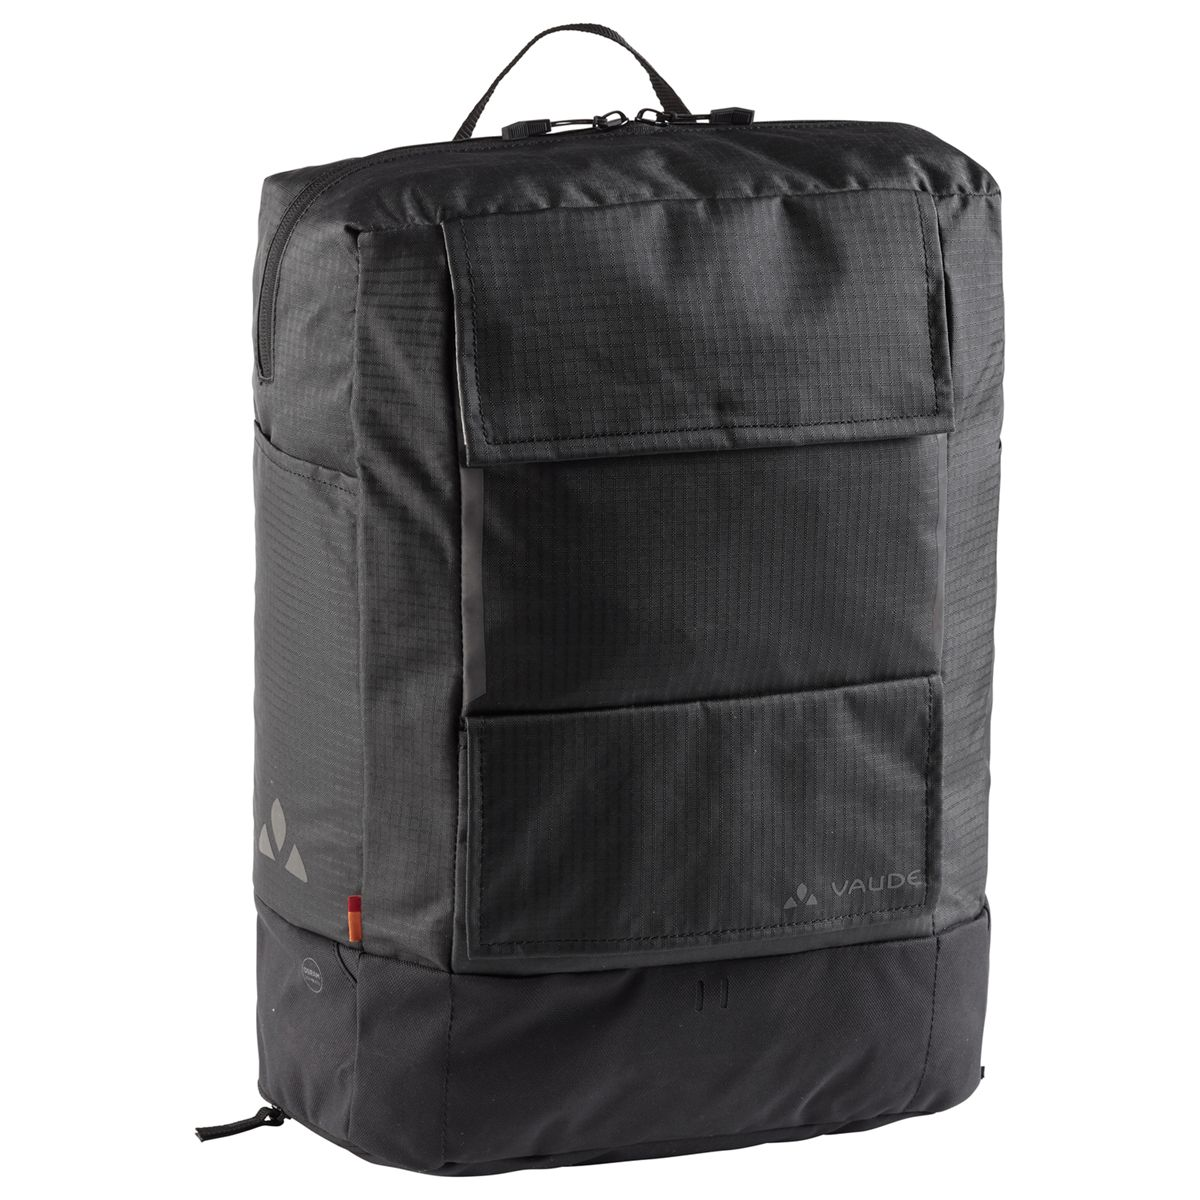 CYCLIST PACK WAXED 2in1 Bike Bag